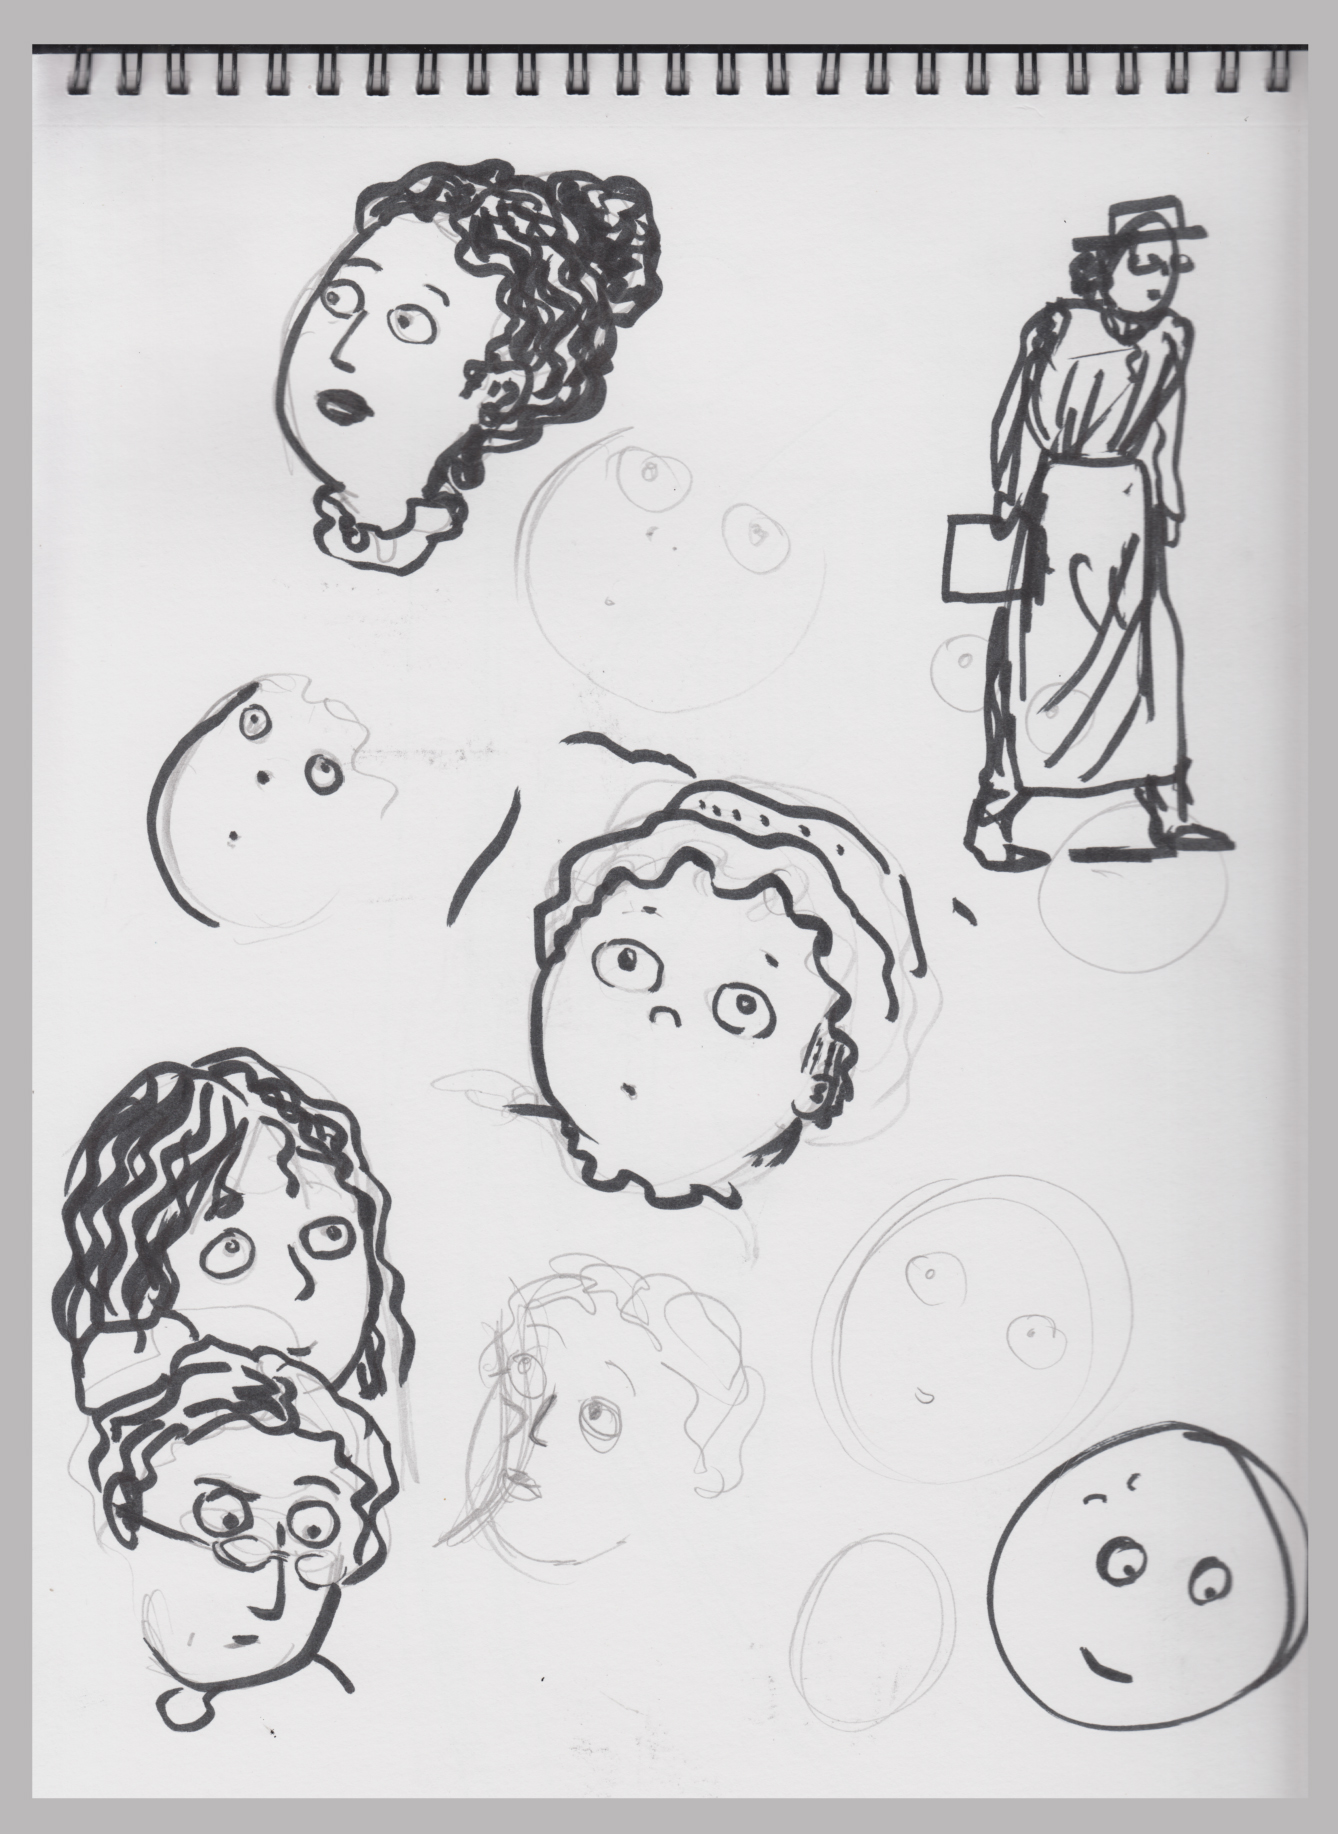 7-8-16 chararcter scribbles